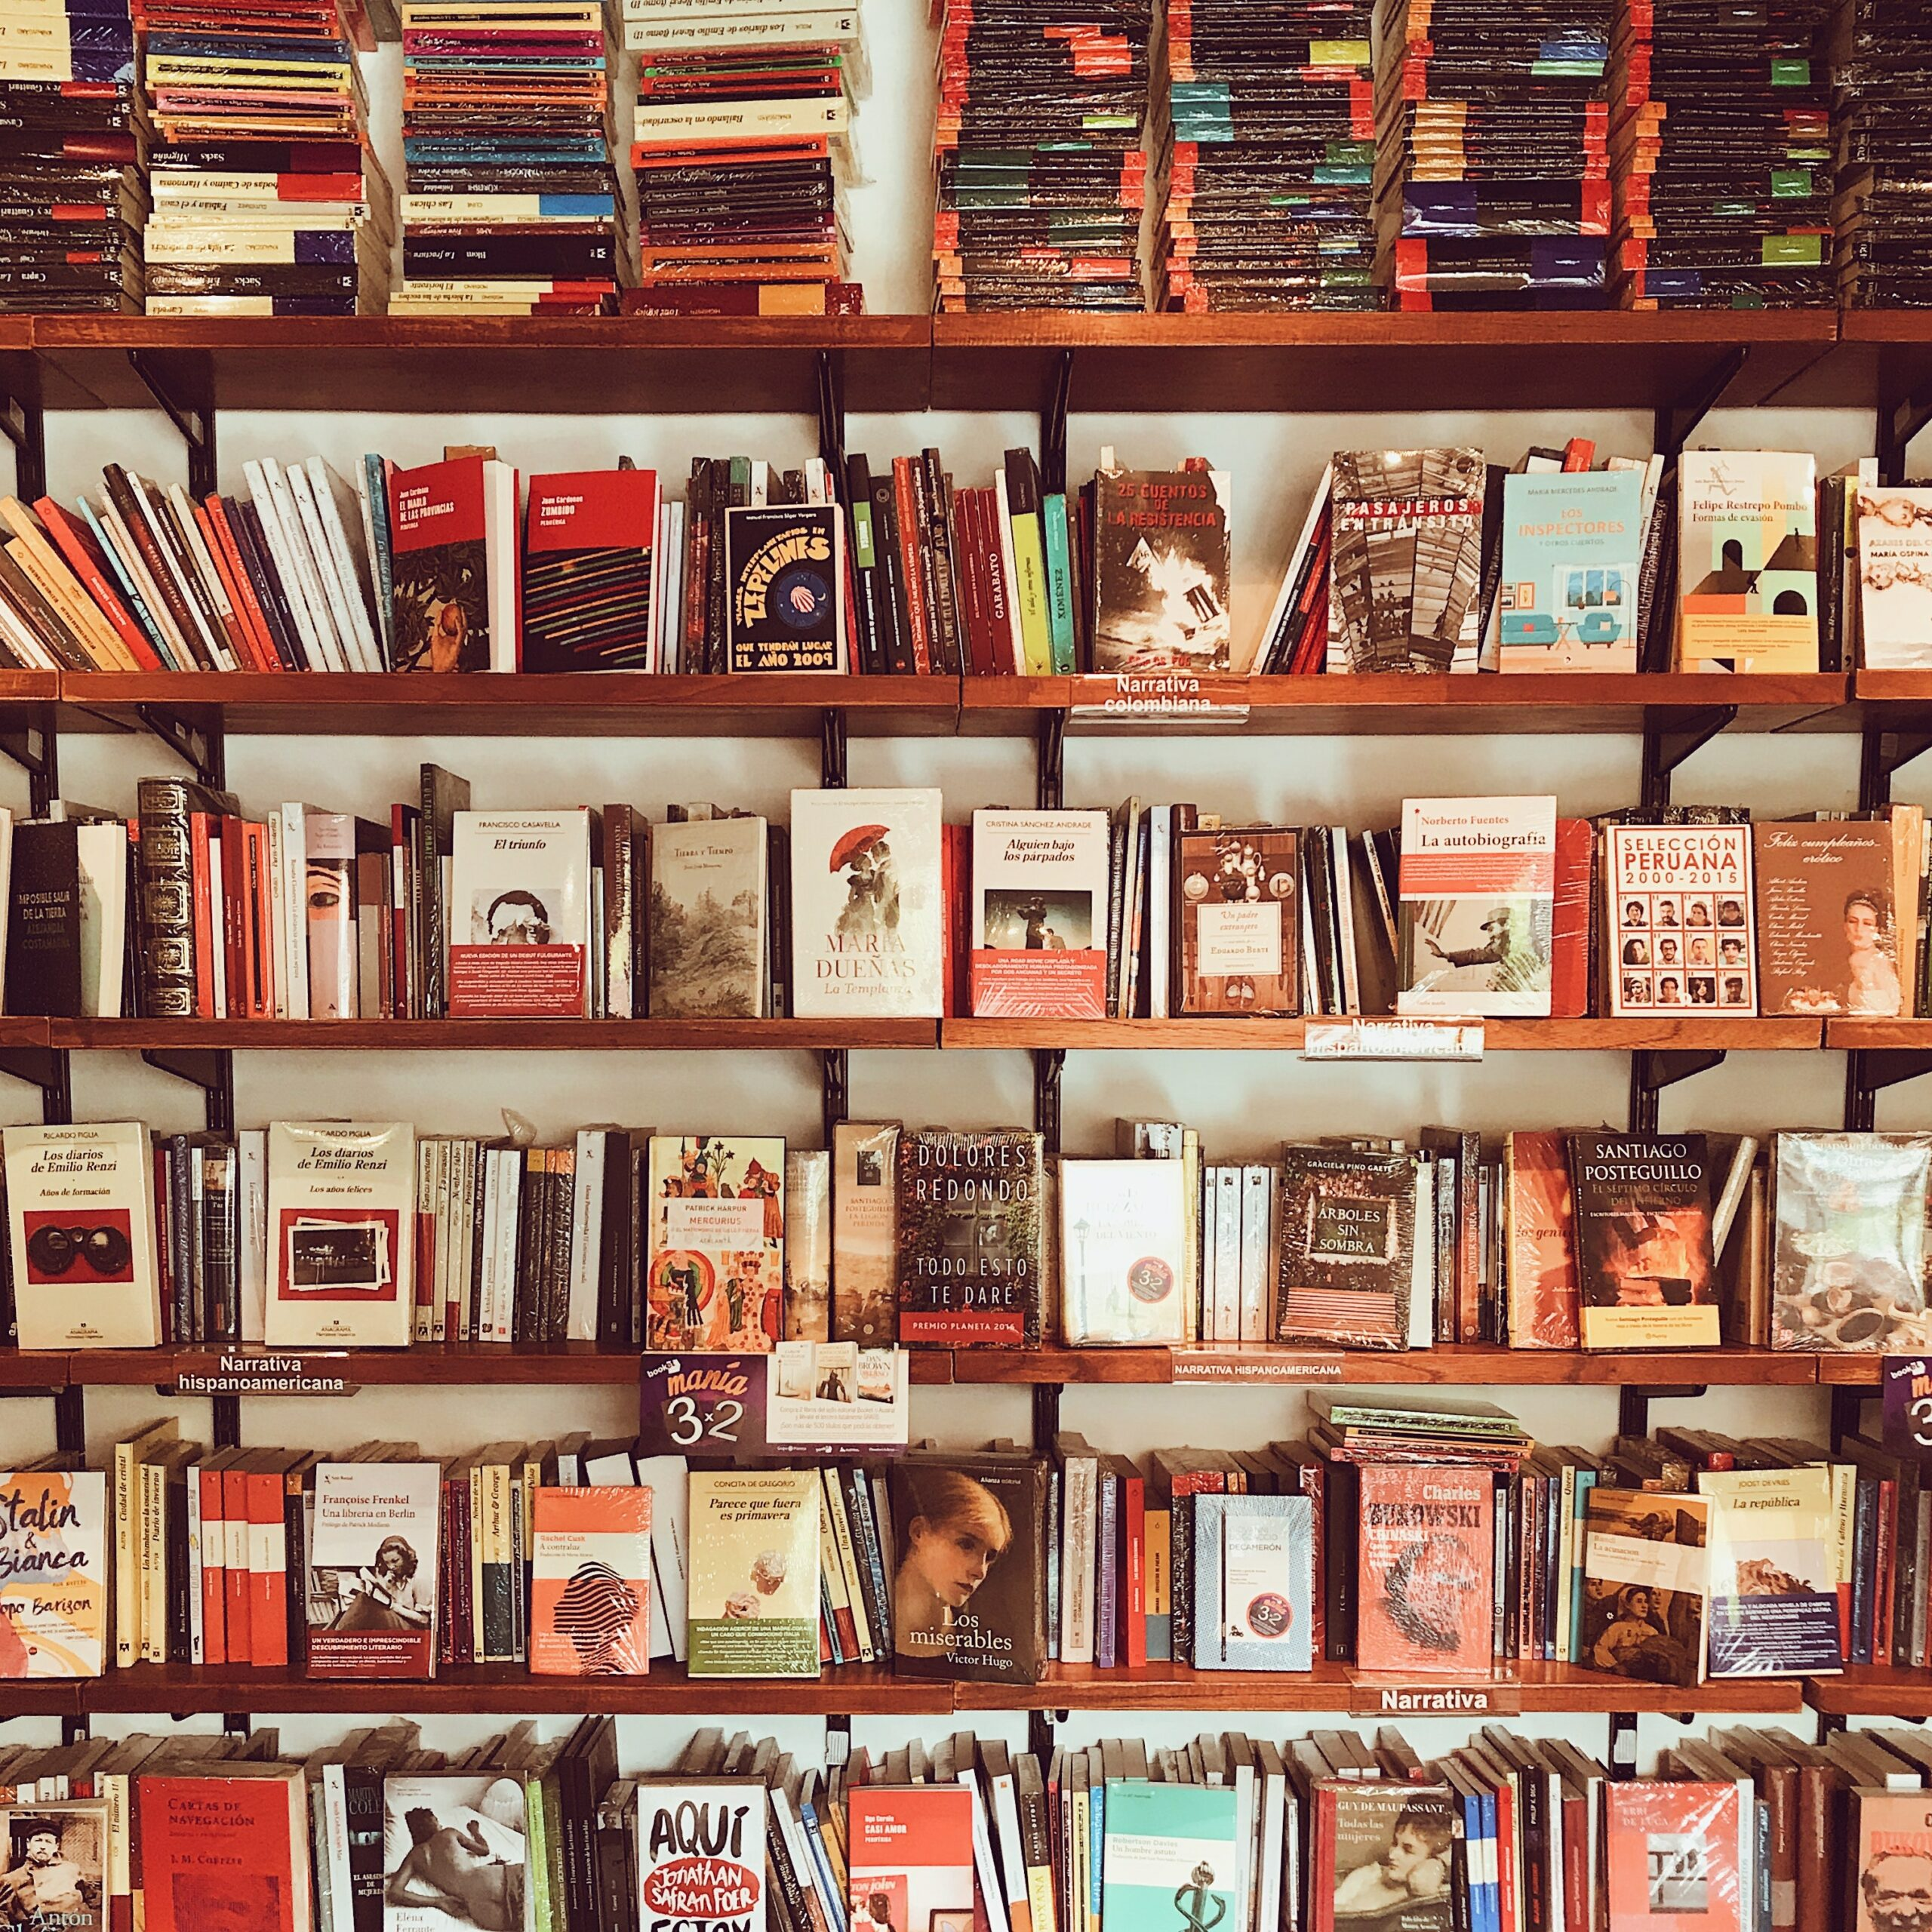 assorted-title-books-on-brown-wooden-shelf-1517355-scaled